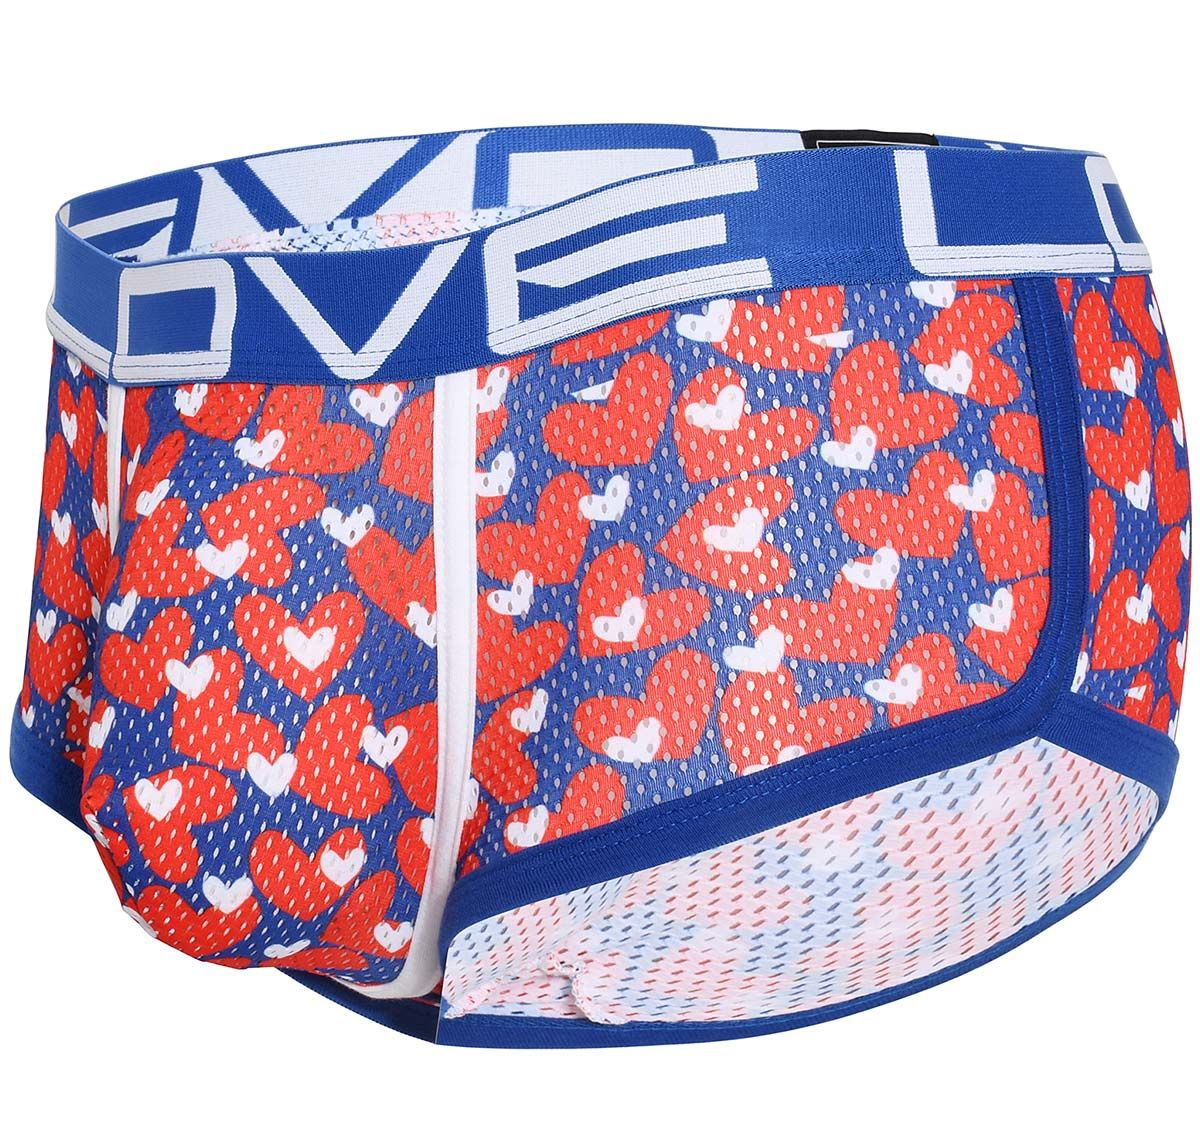 Andrew Christian Bóxer LOVE SWEETHEART MESH BOXER with ALMOST NAKED 91542, multicolor